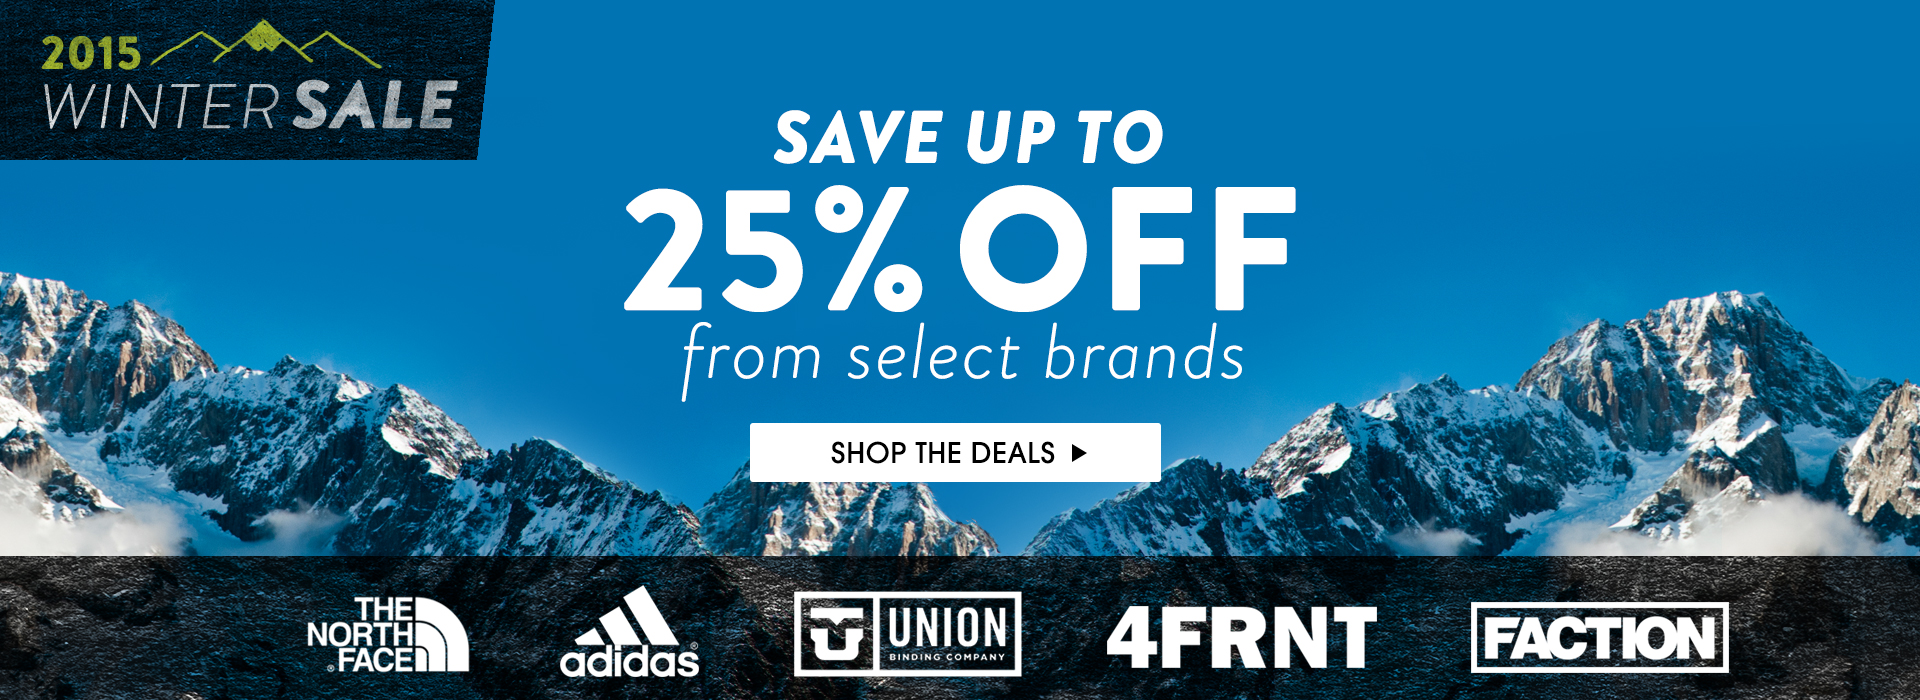 2015 Winter Sale. Save Up To 25% Off Select Brands!